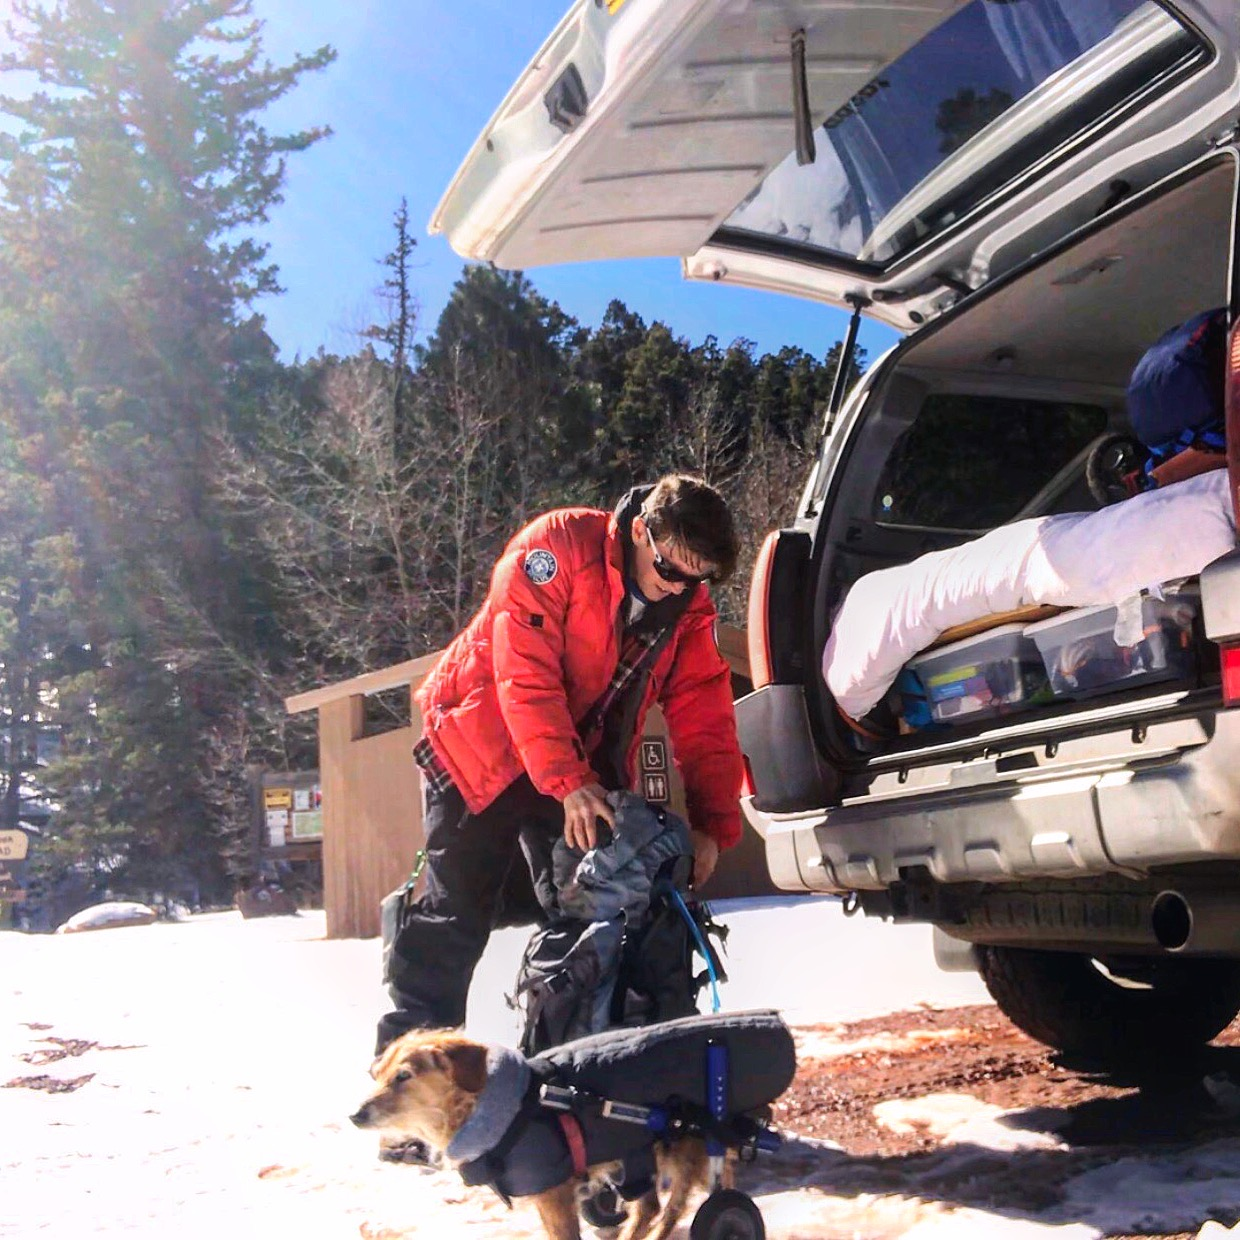 Me and Charlie preparing for a winter hike at Pike's Peak in Colorado.